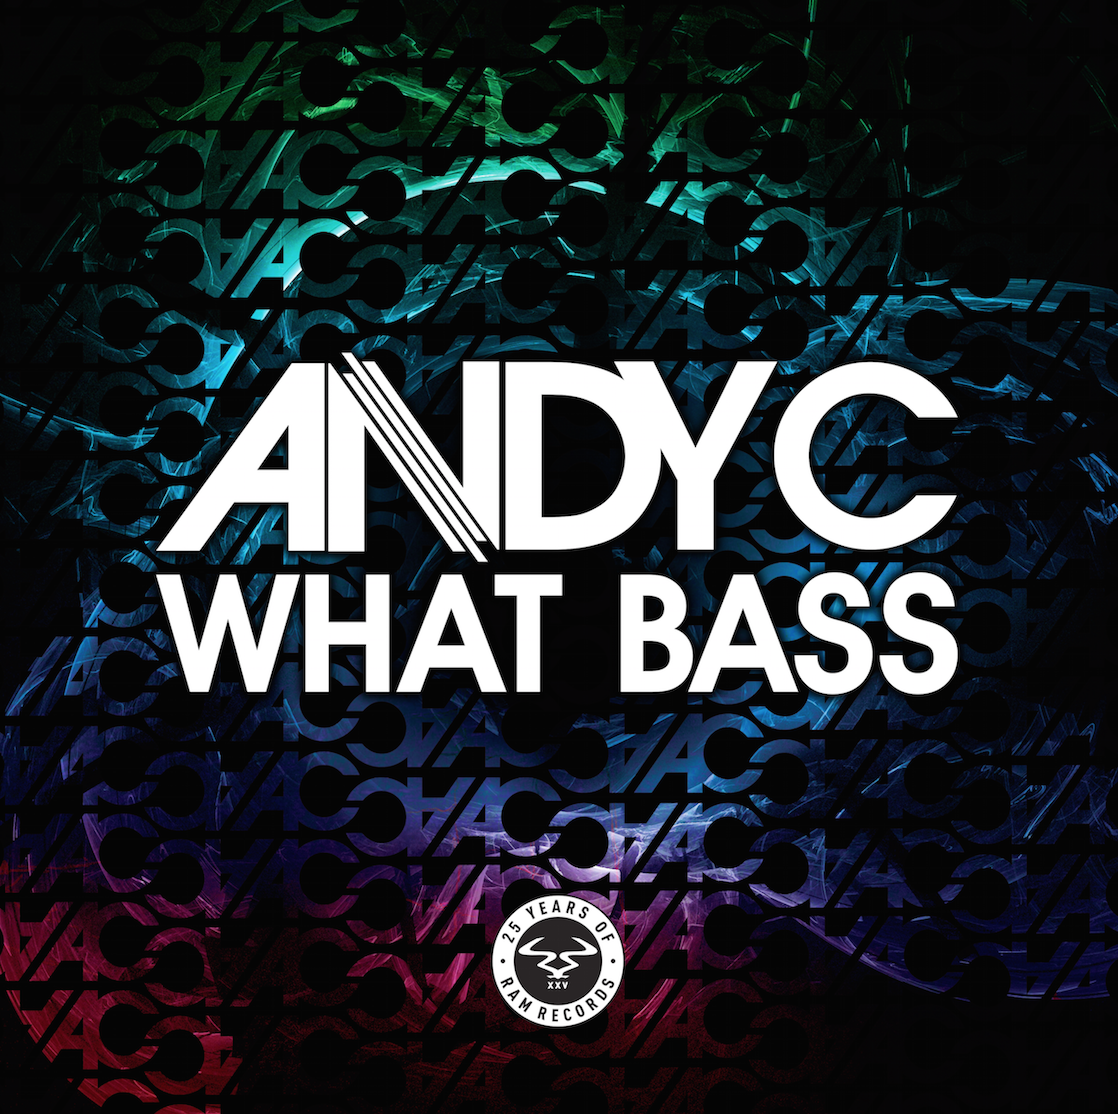 'WHAT BASS' reaches #1 on Beatport